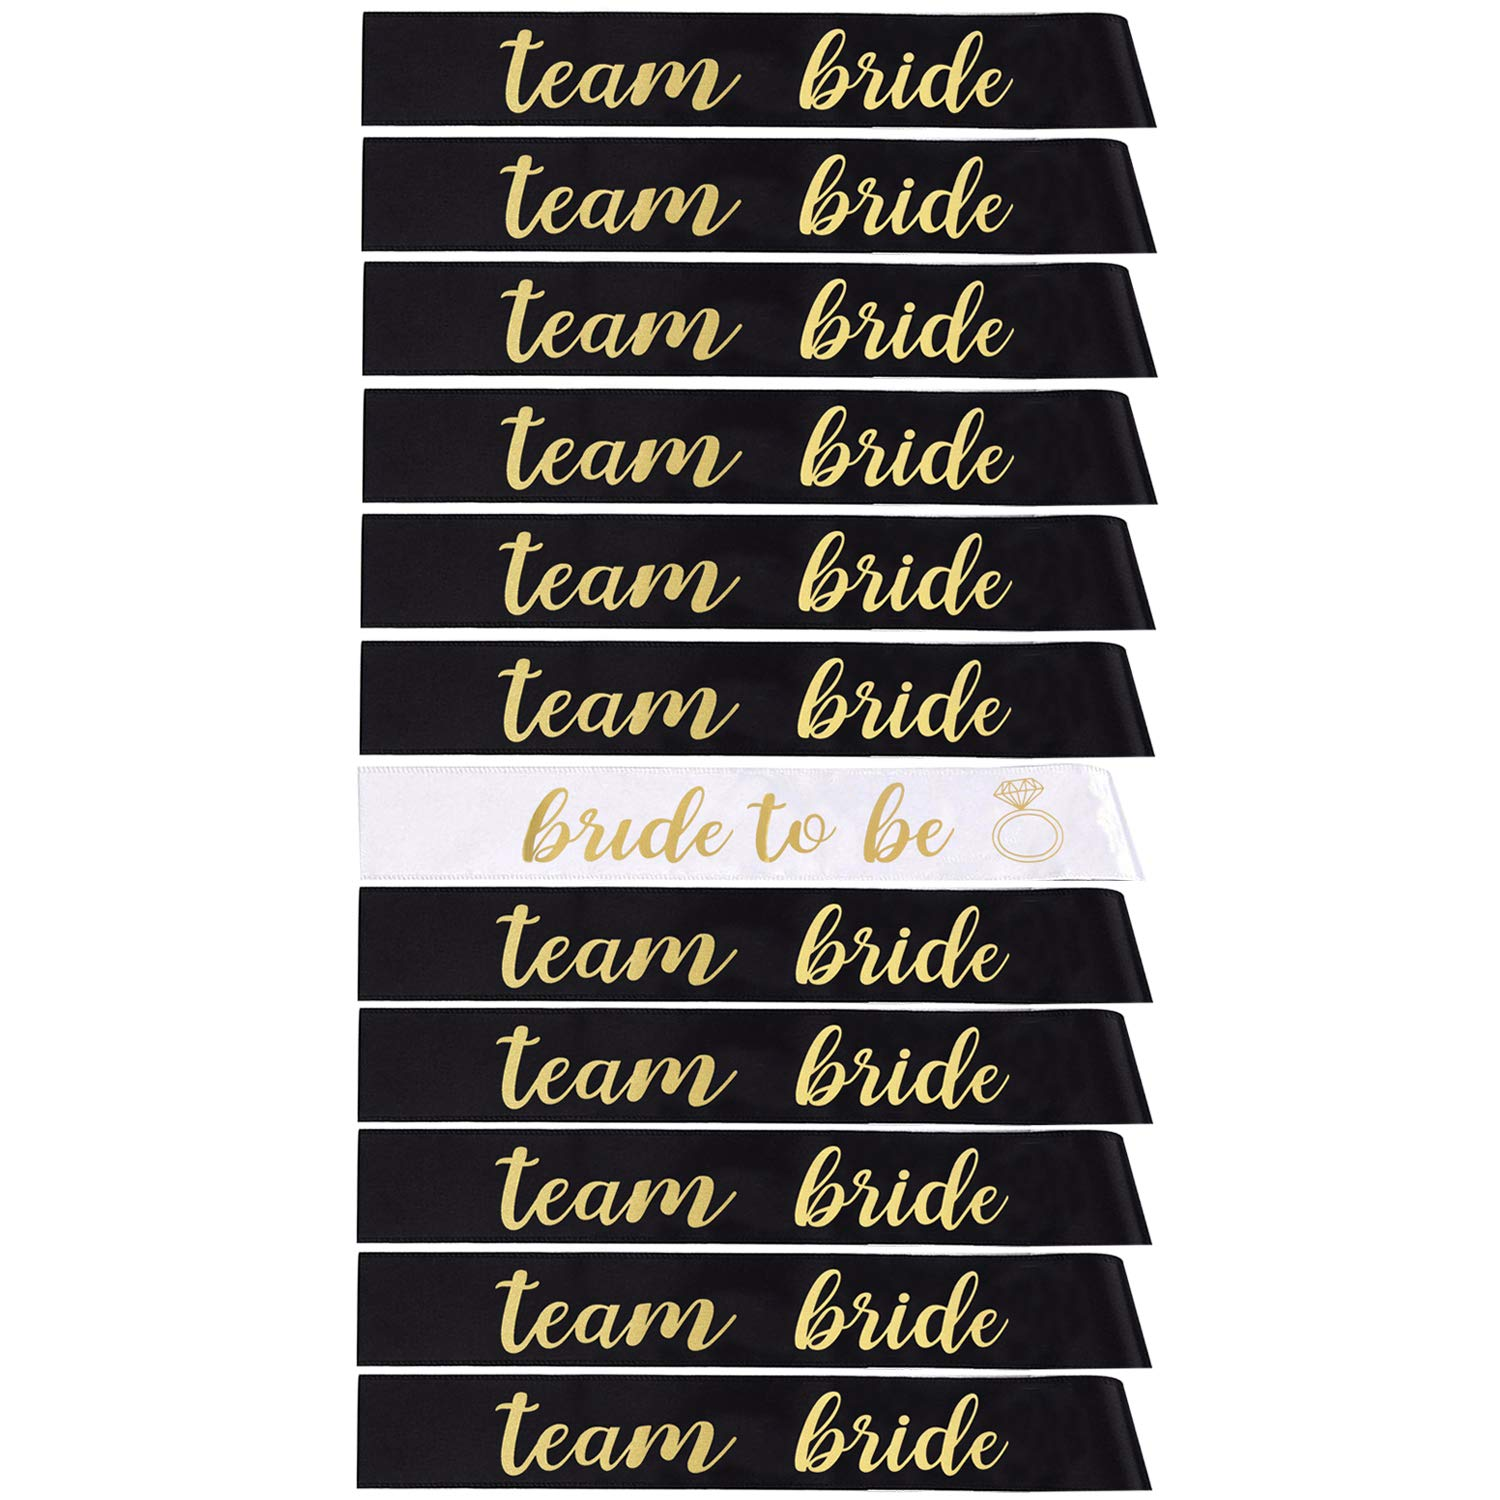 Pack of 12 Bachelorette Sashes- Includes 1 Bride to Be sash and 11 Team Bride Sashes - Hen Party Wedding Decorations Party Favors Accessories by Humphrey Amelia